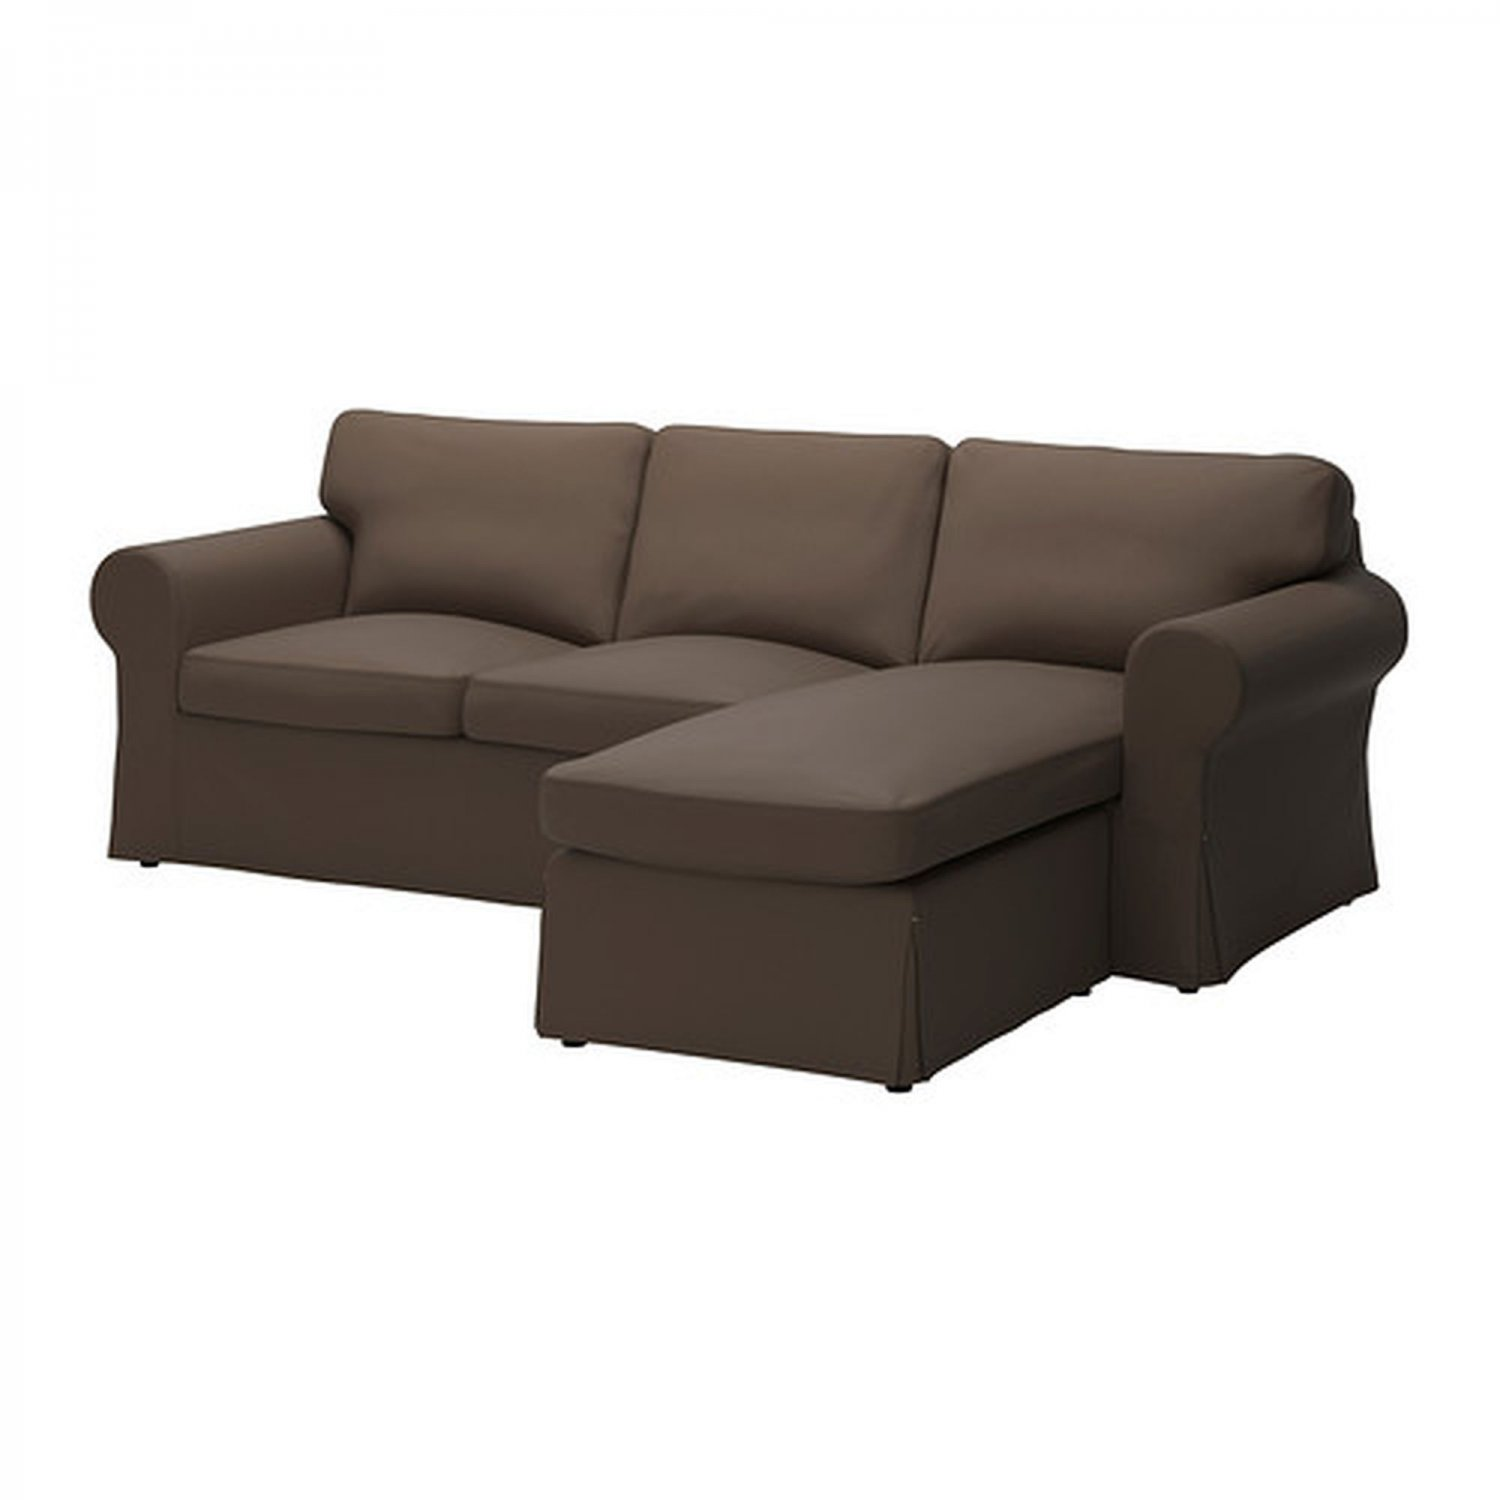 Ikea ektorp loveseat with chaise slipcover 3 seat for 3 seat sofa with chaise